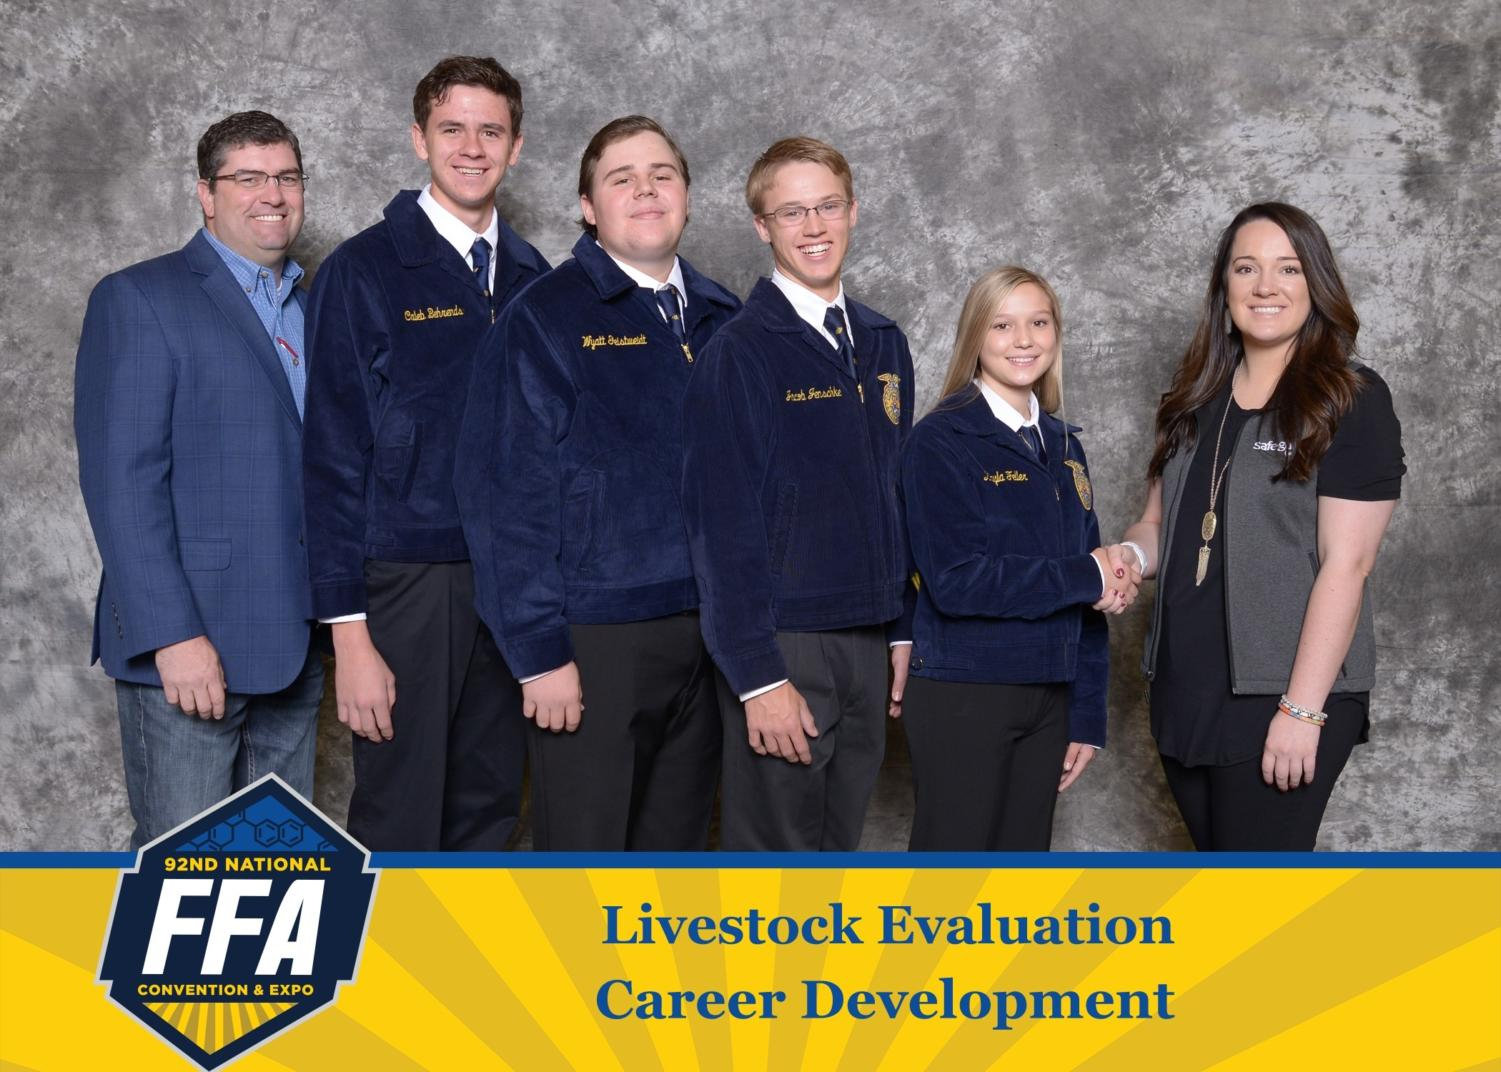 Fredericksburg Livestock Judging Team Returns to Scotland for the Second Time in Three Years